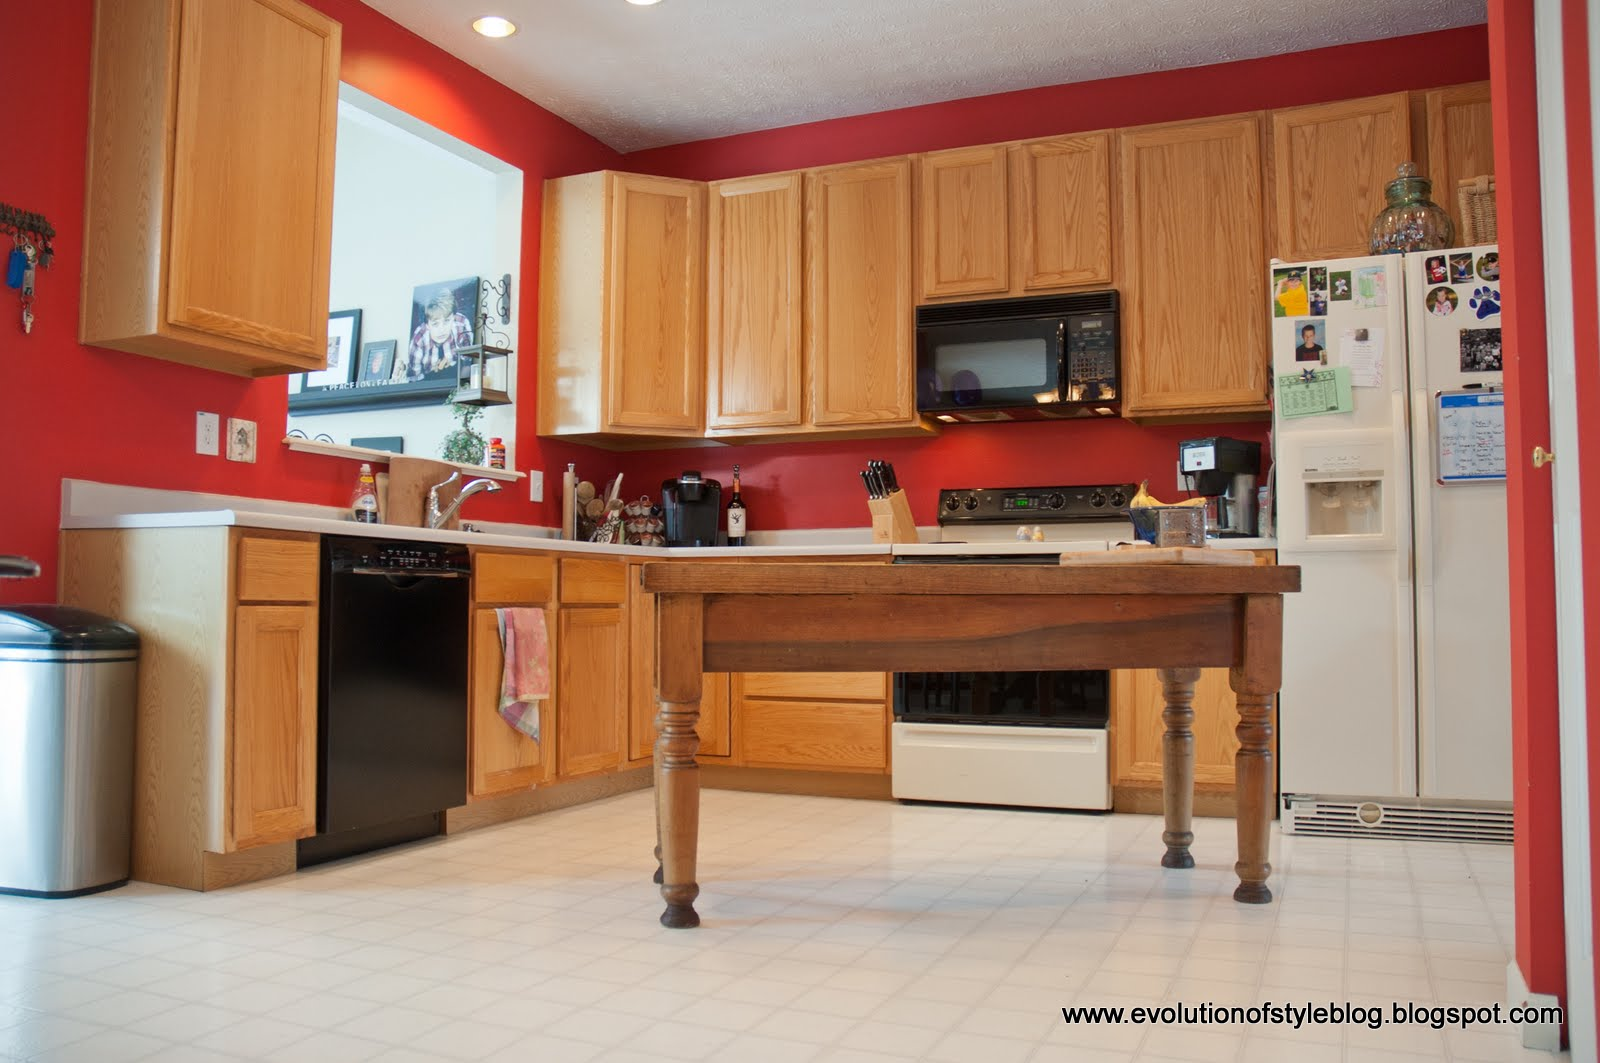 oak kitchen reveal: from builder grade to custom made - evolution